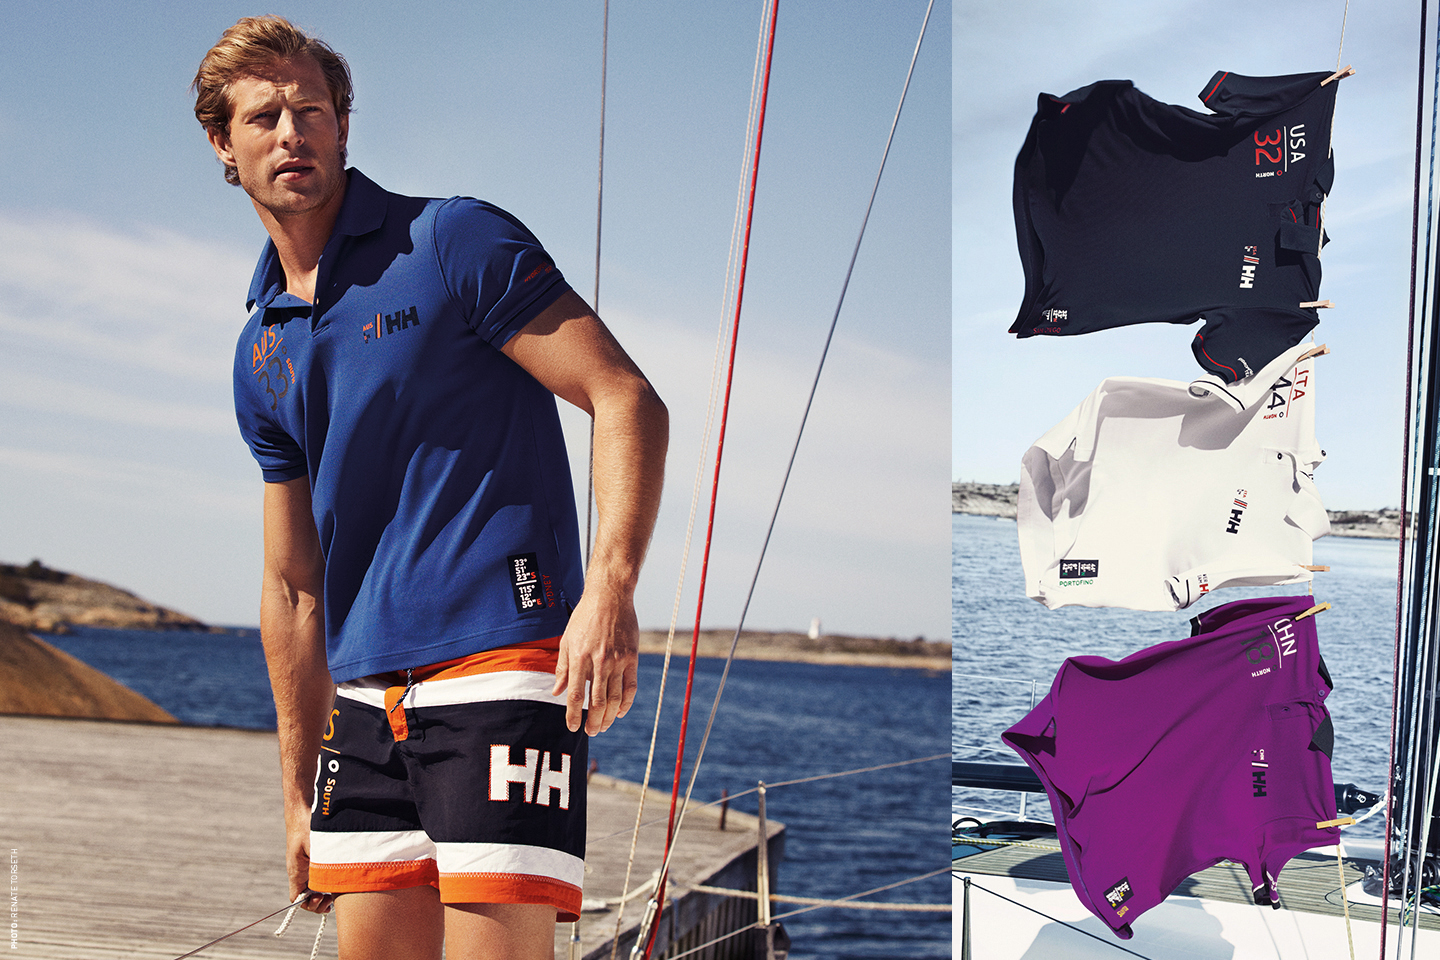 Helly Hansen sailing image, HH t-shirt and shors.